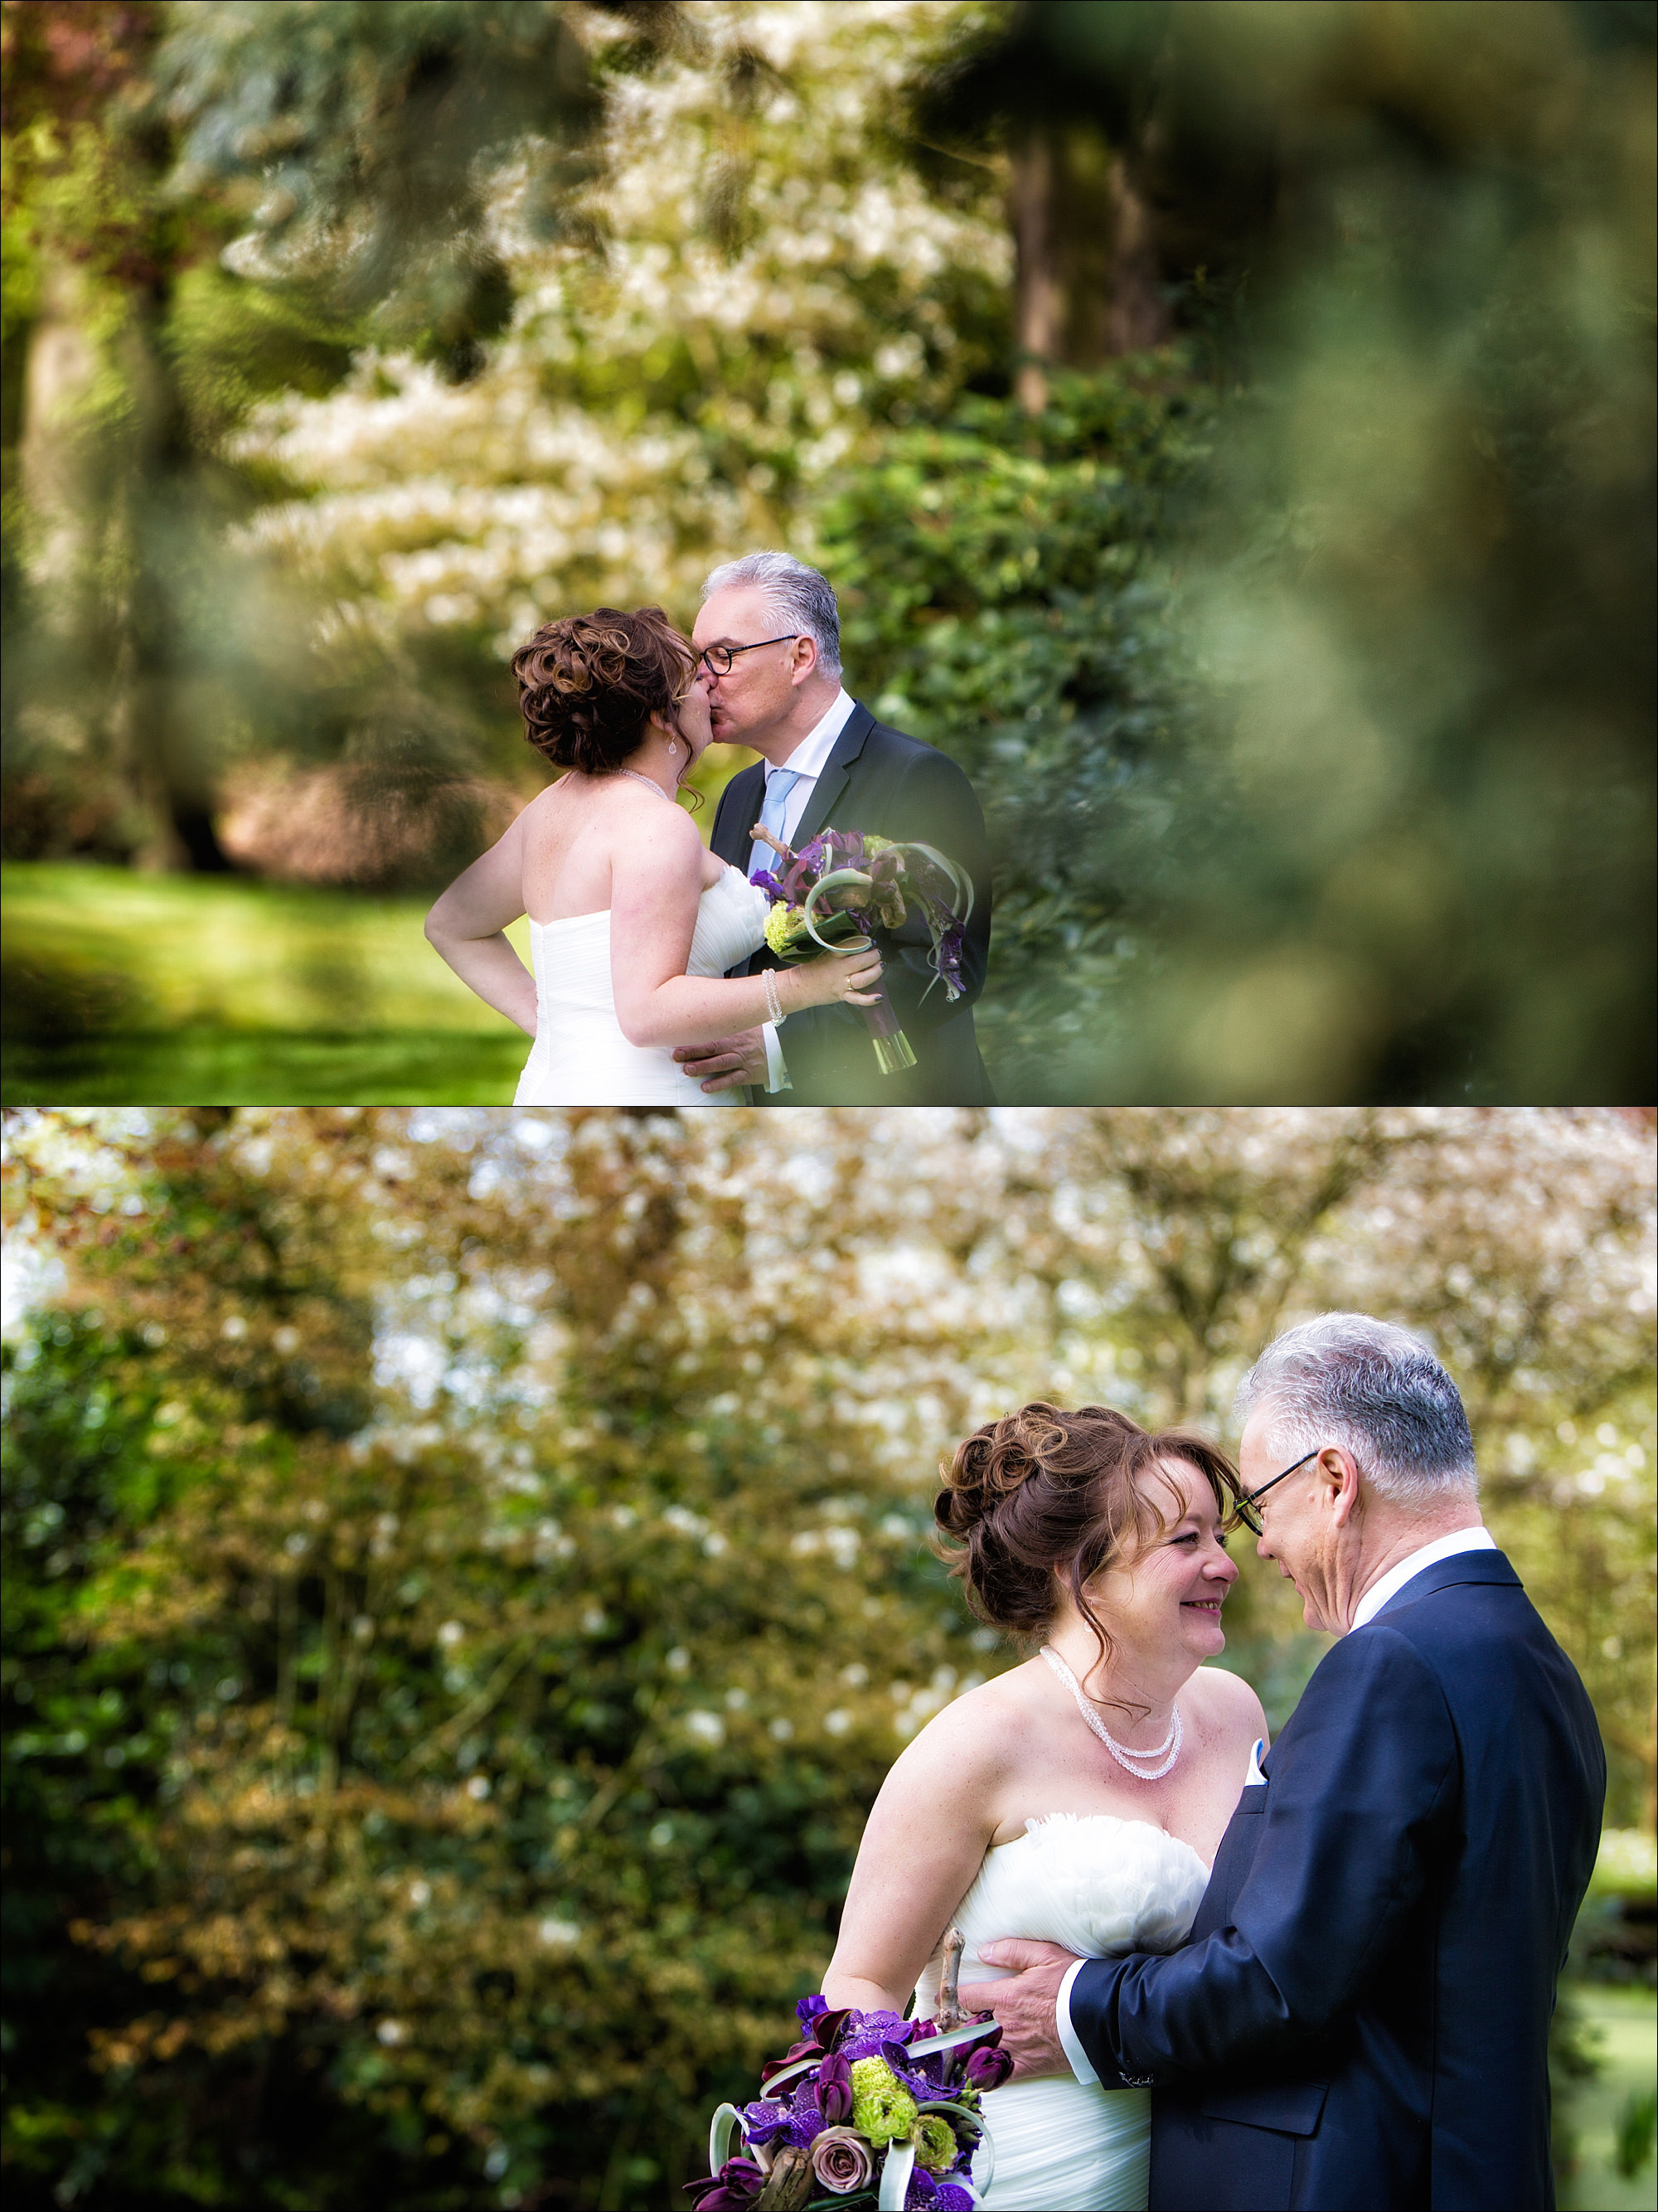 wedding photographer dublin david duignan photography real weddings Ireland 26